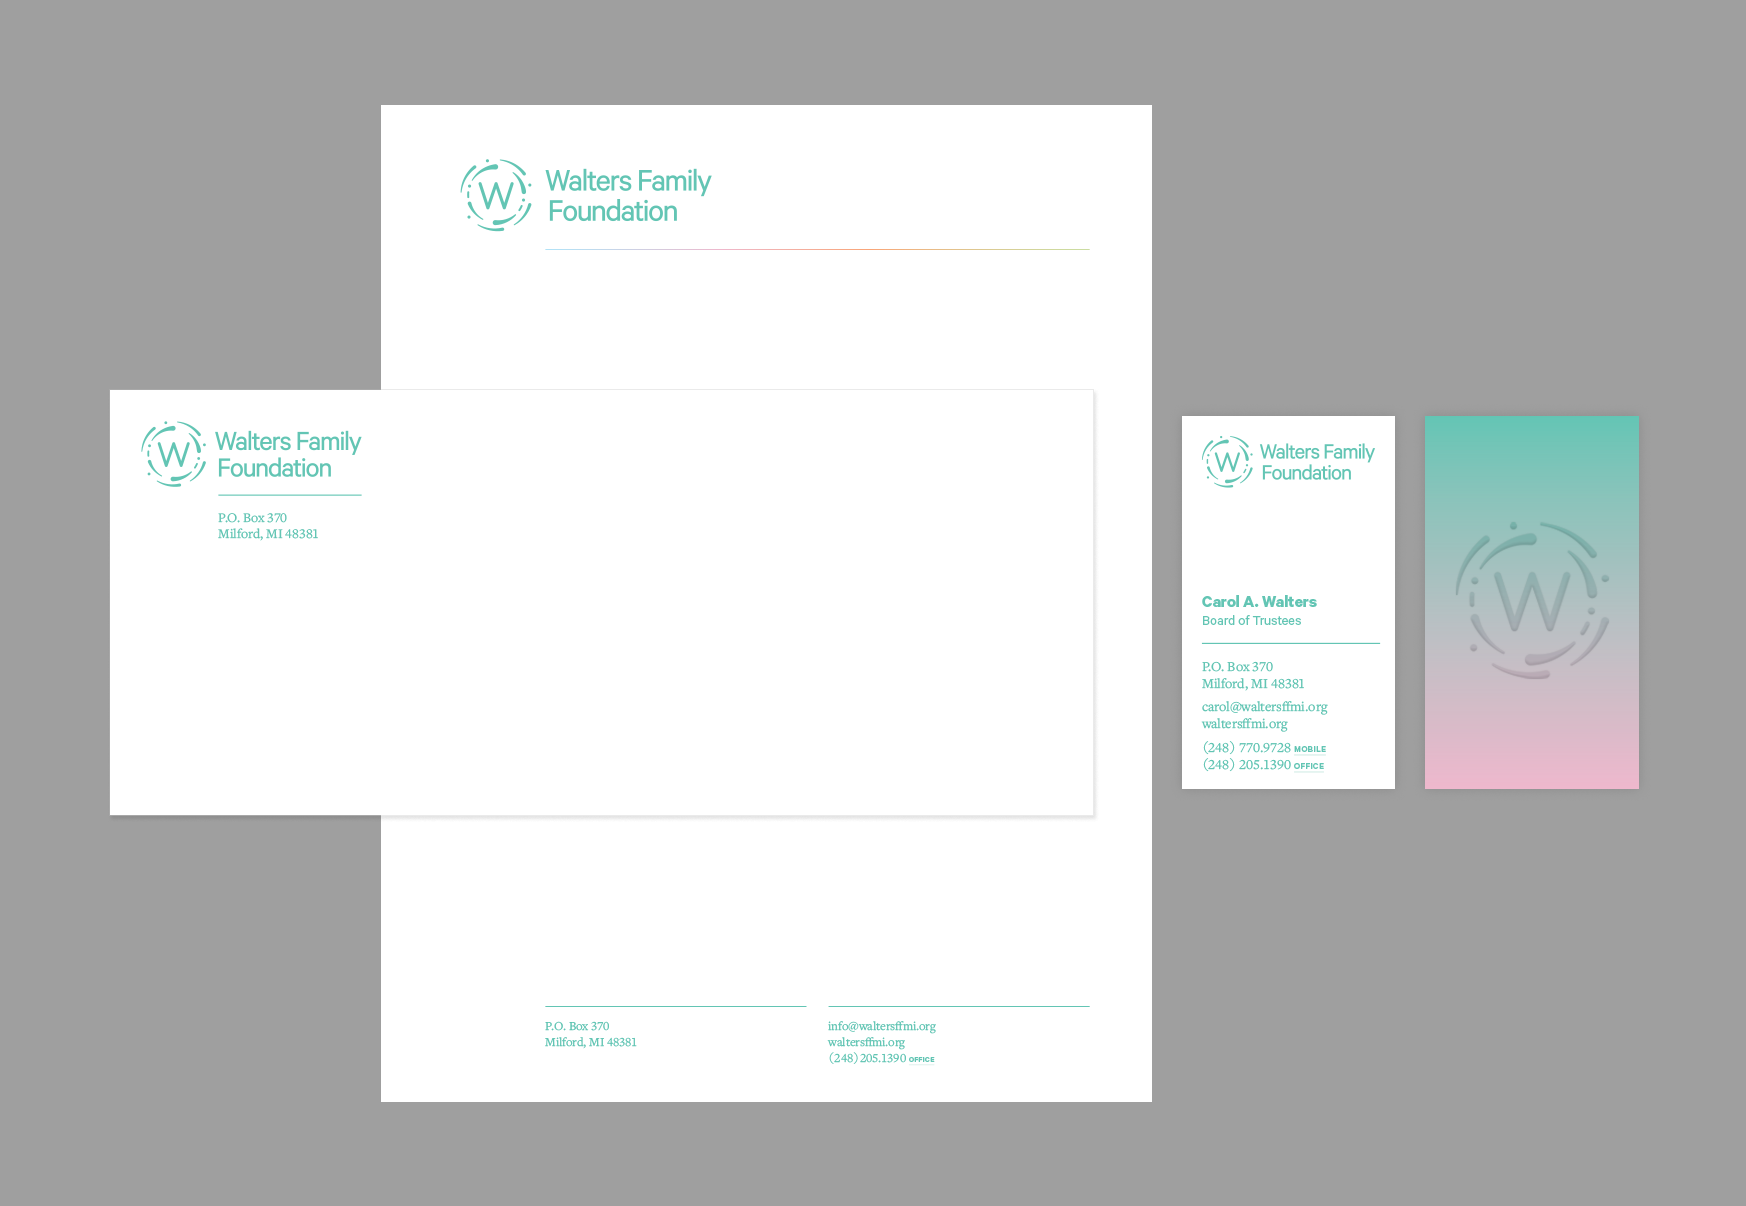 Print matter (letterhead, envelopes, business cards)